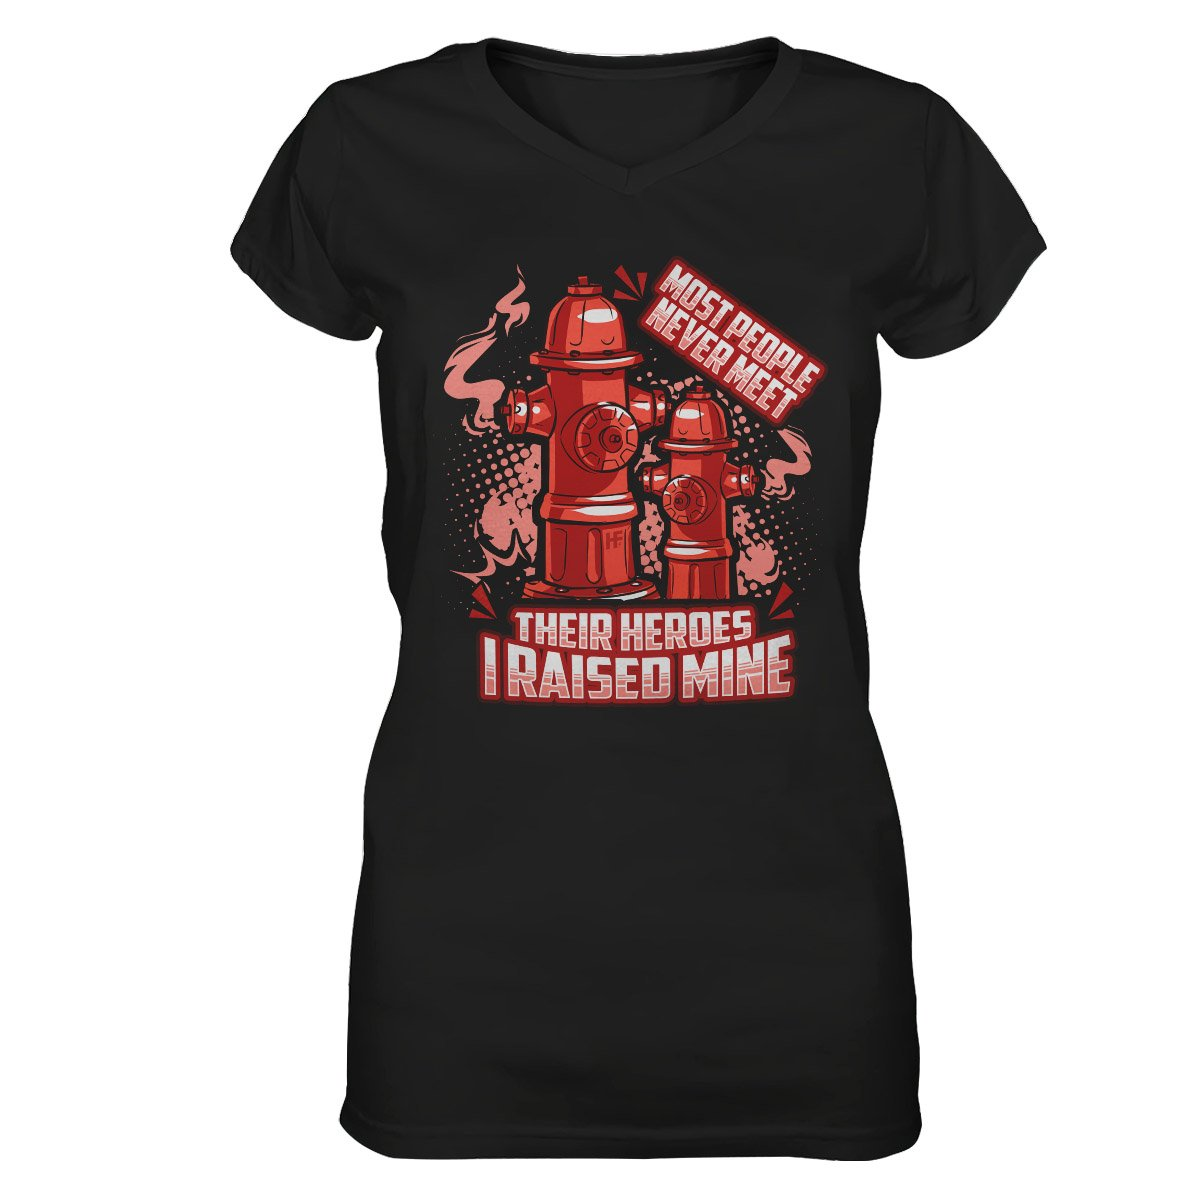 Most People Never Meet Their Heroes Firefighter EZ24 1802 Women V-neck T-shirt